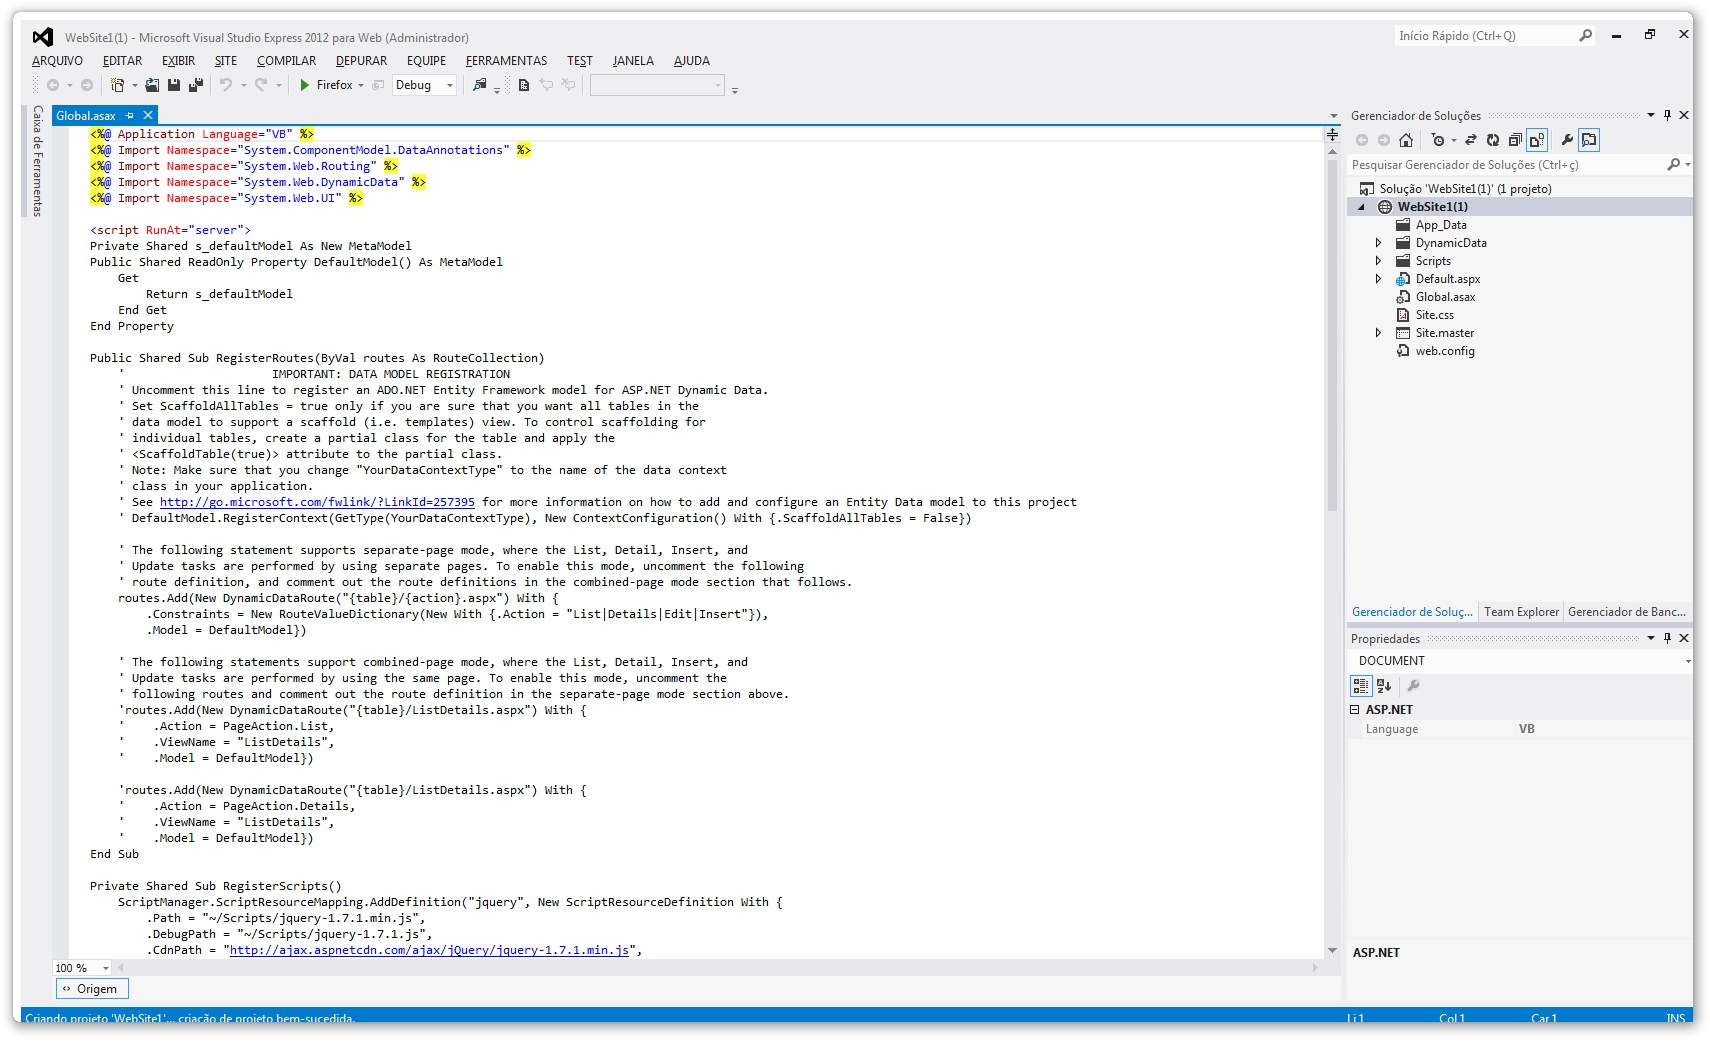 how to download visual studio 2015 for free